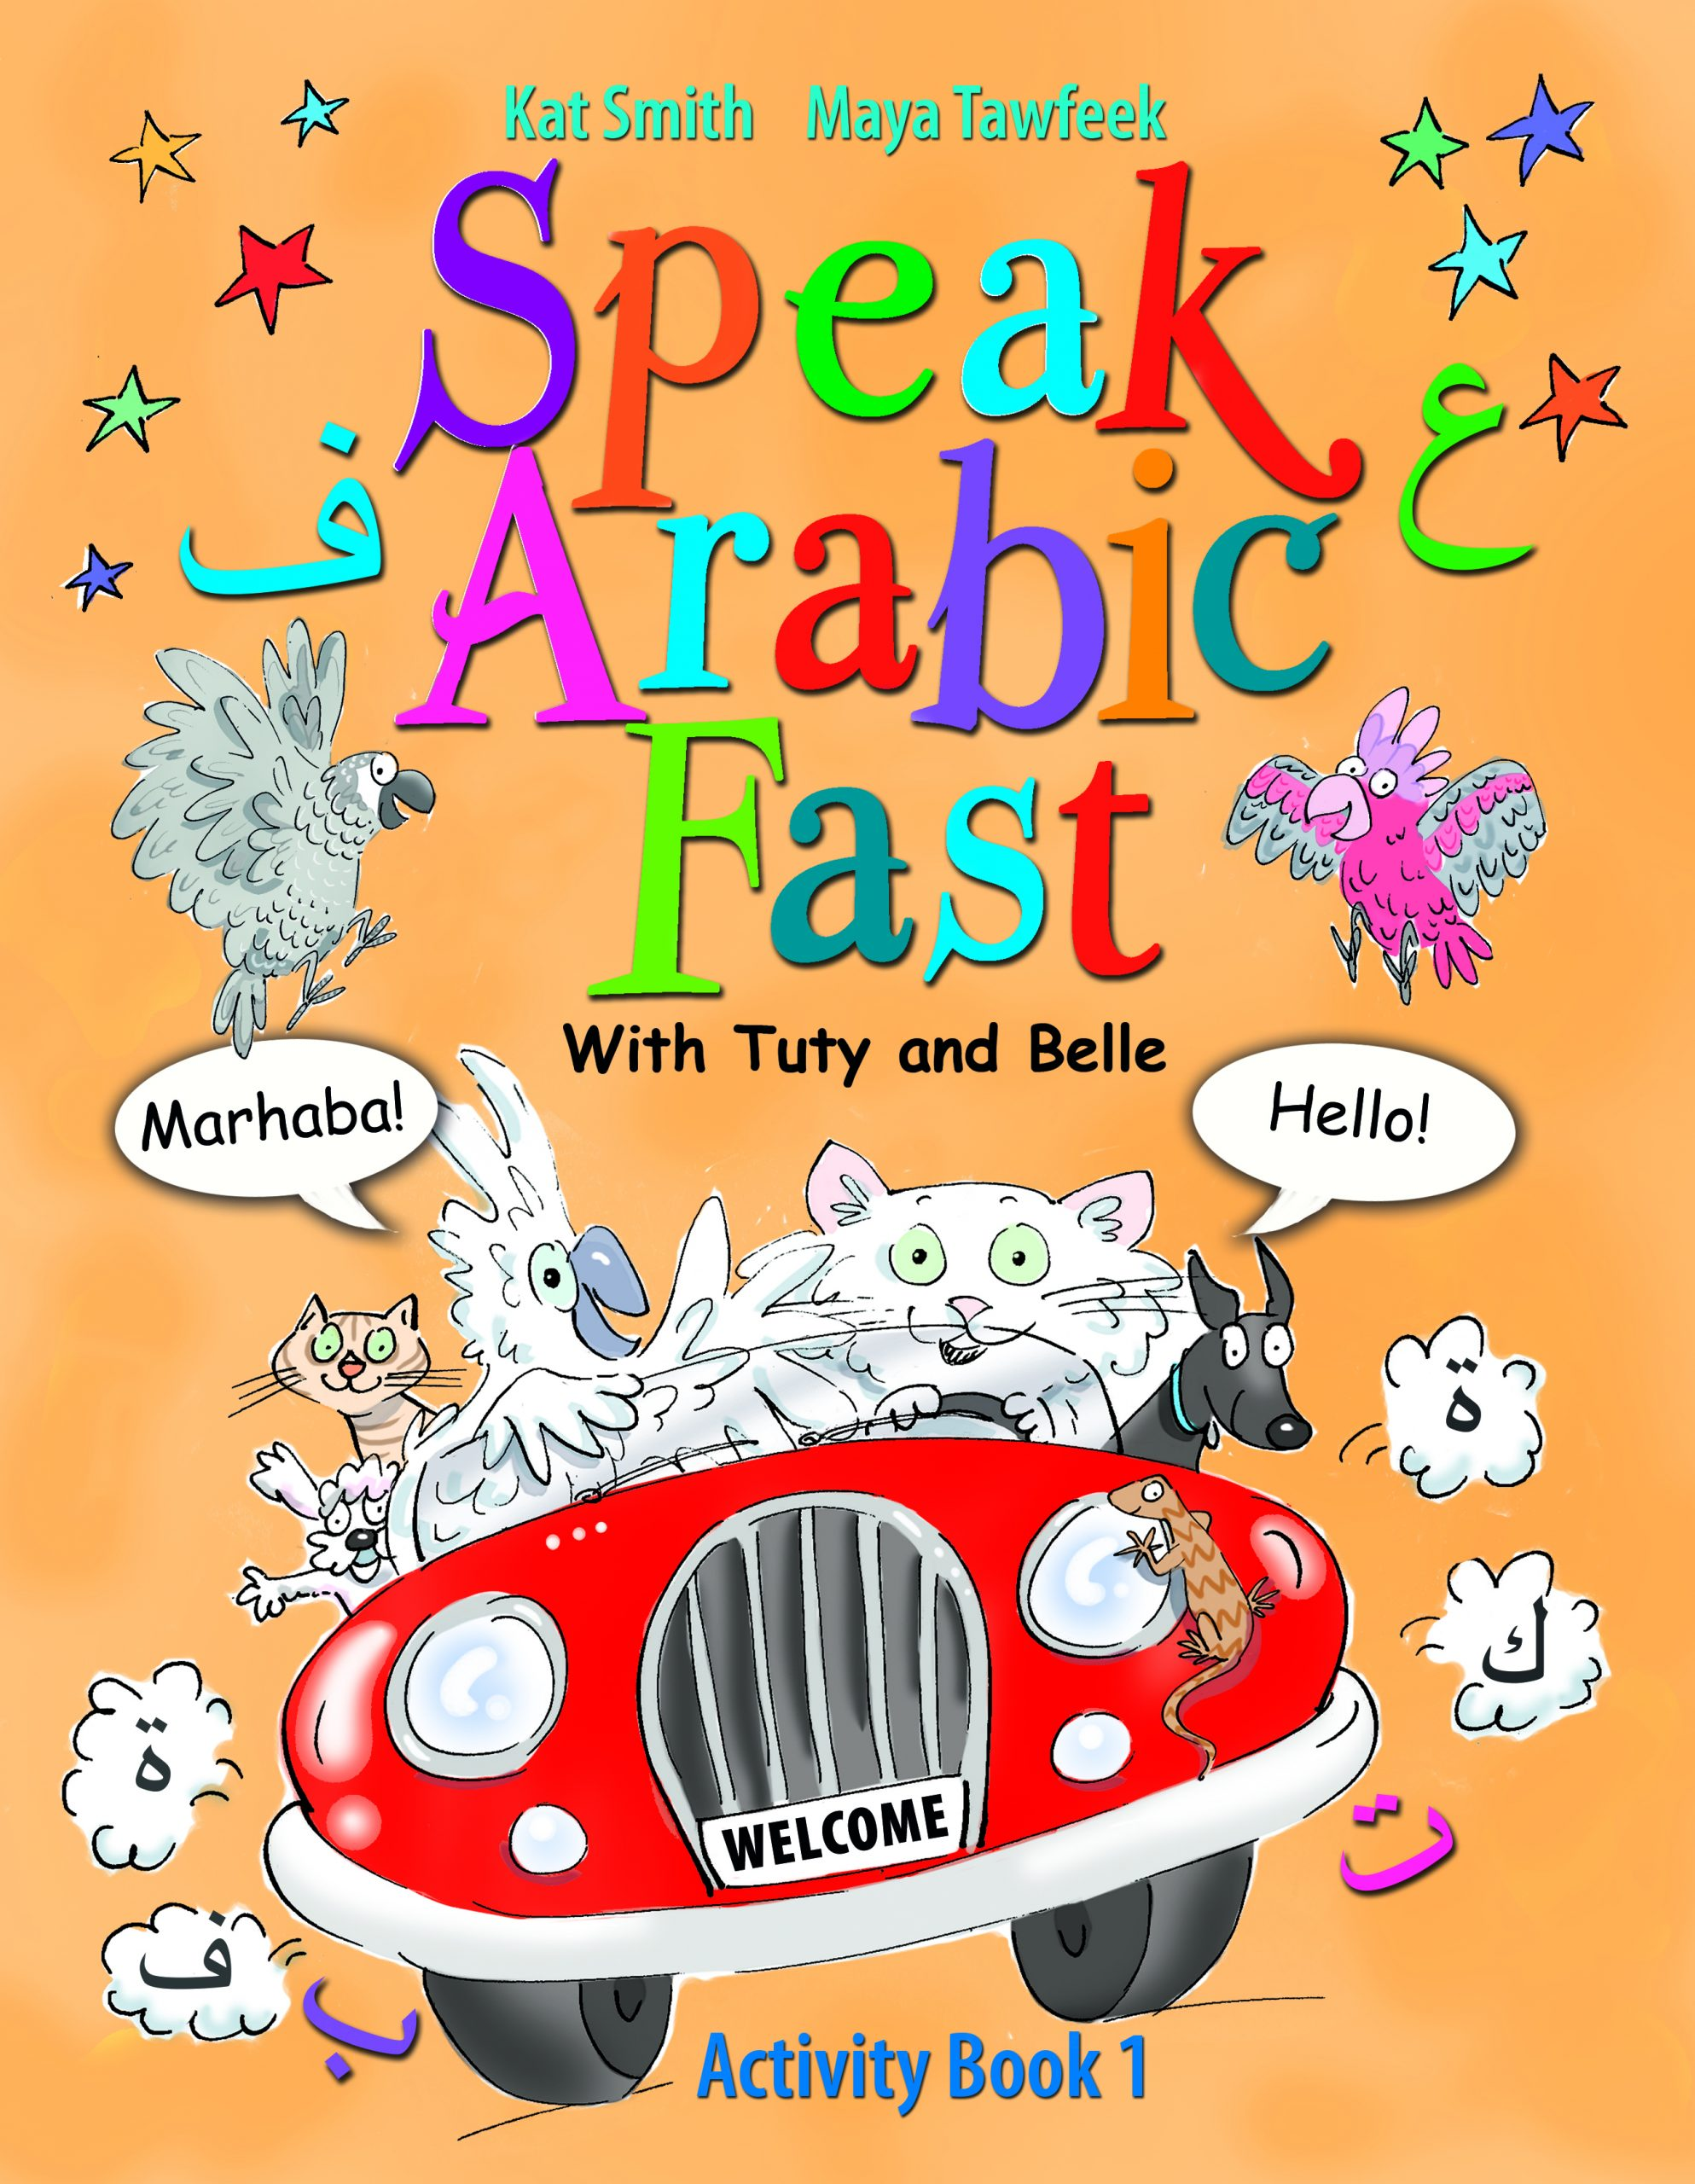 Speak Arabic Fast with Tuty and Belle - Activity Book 1